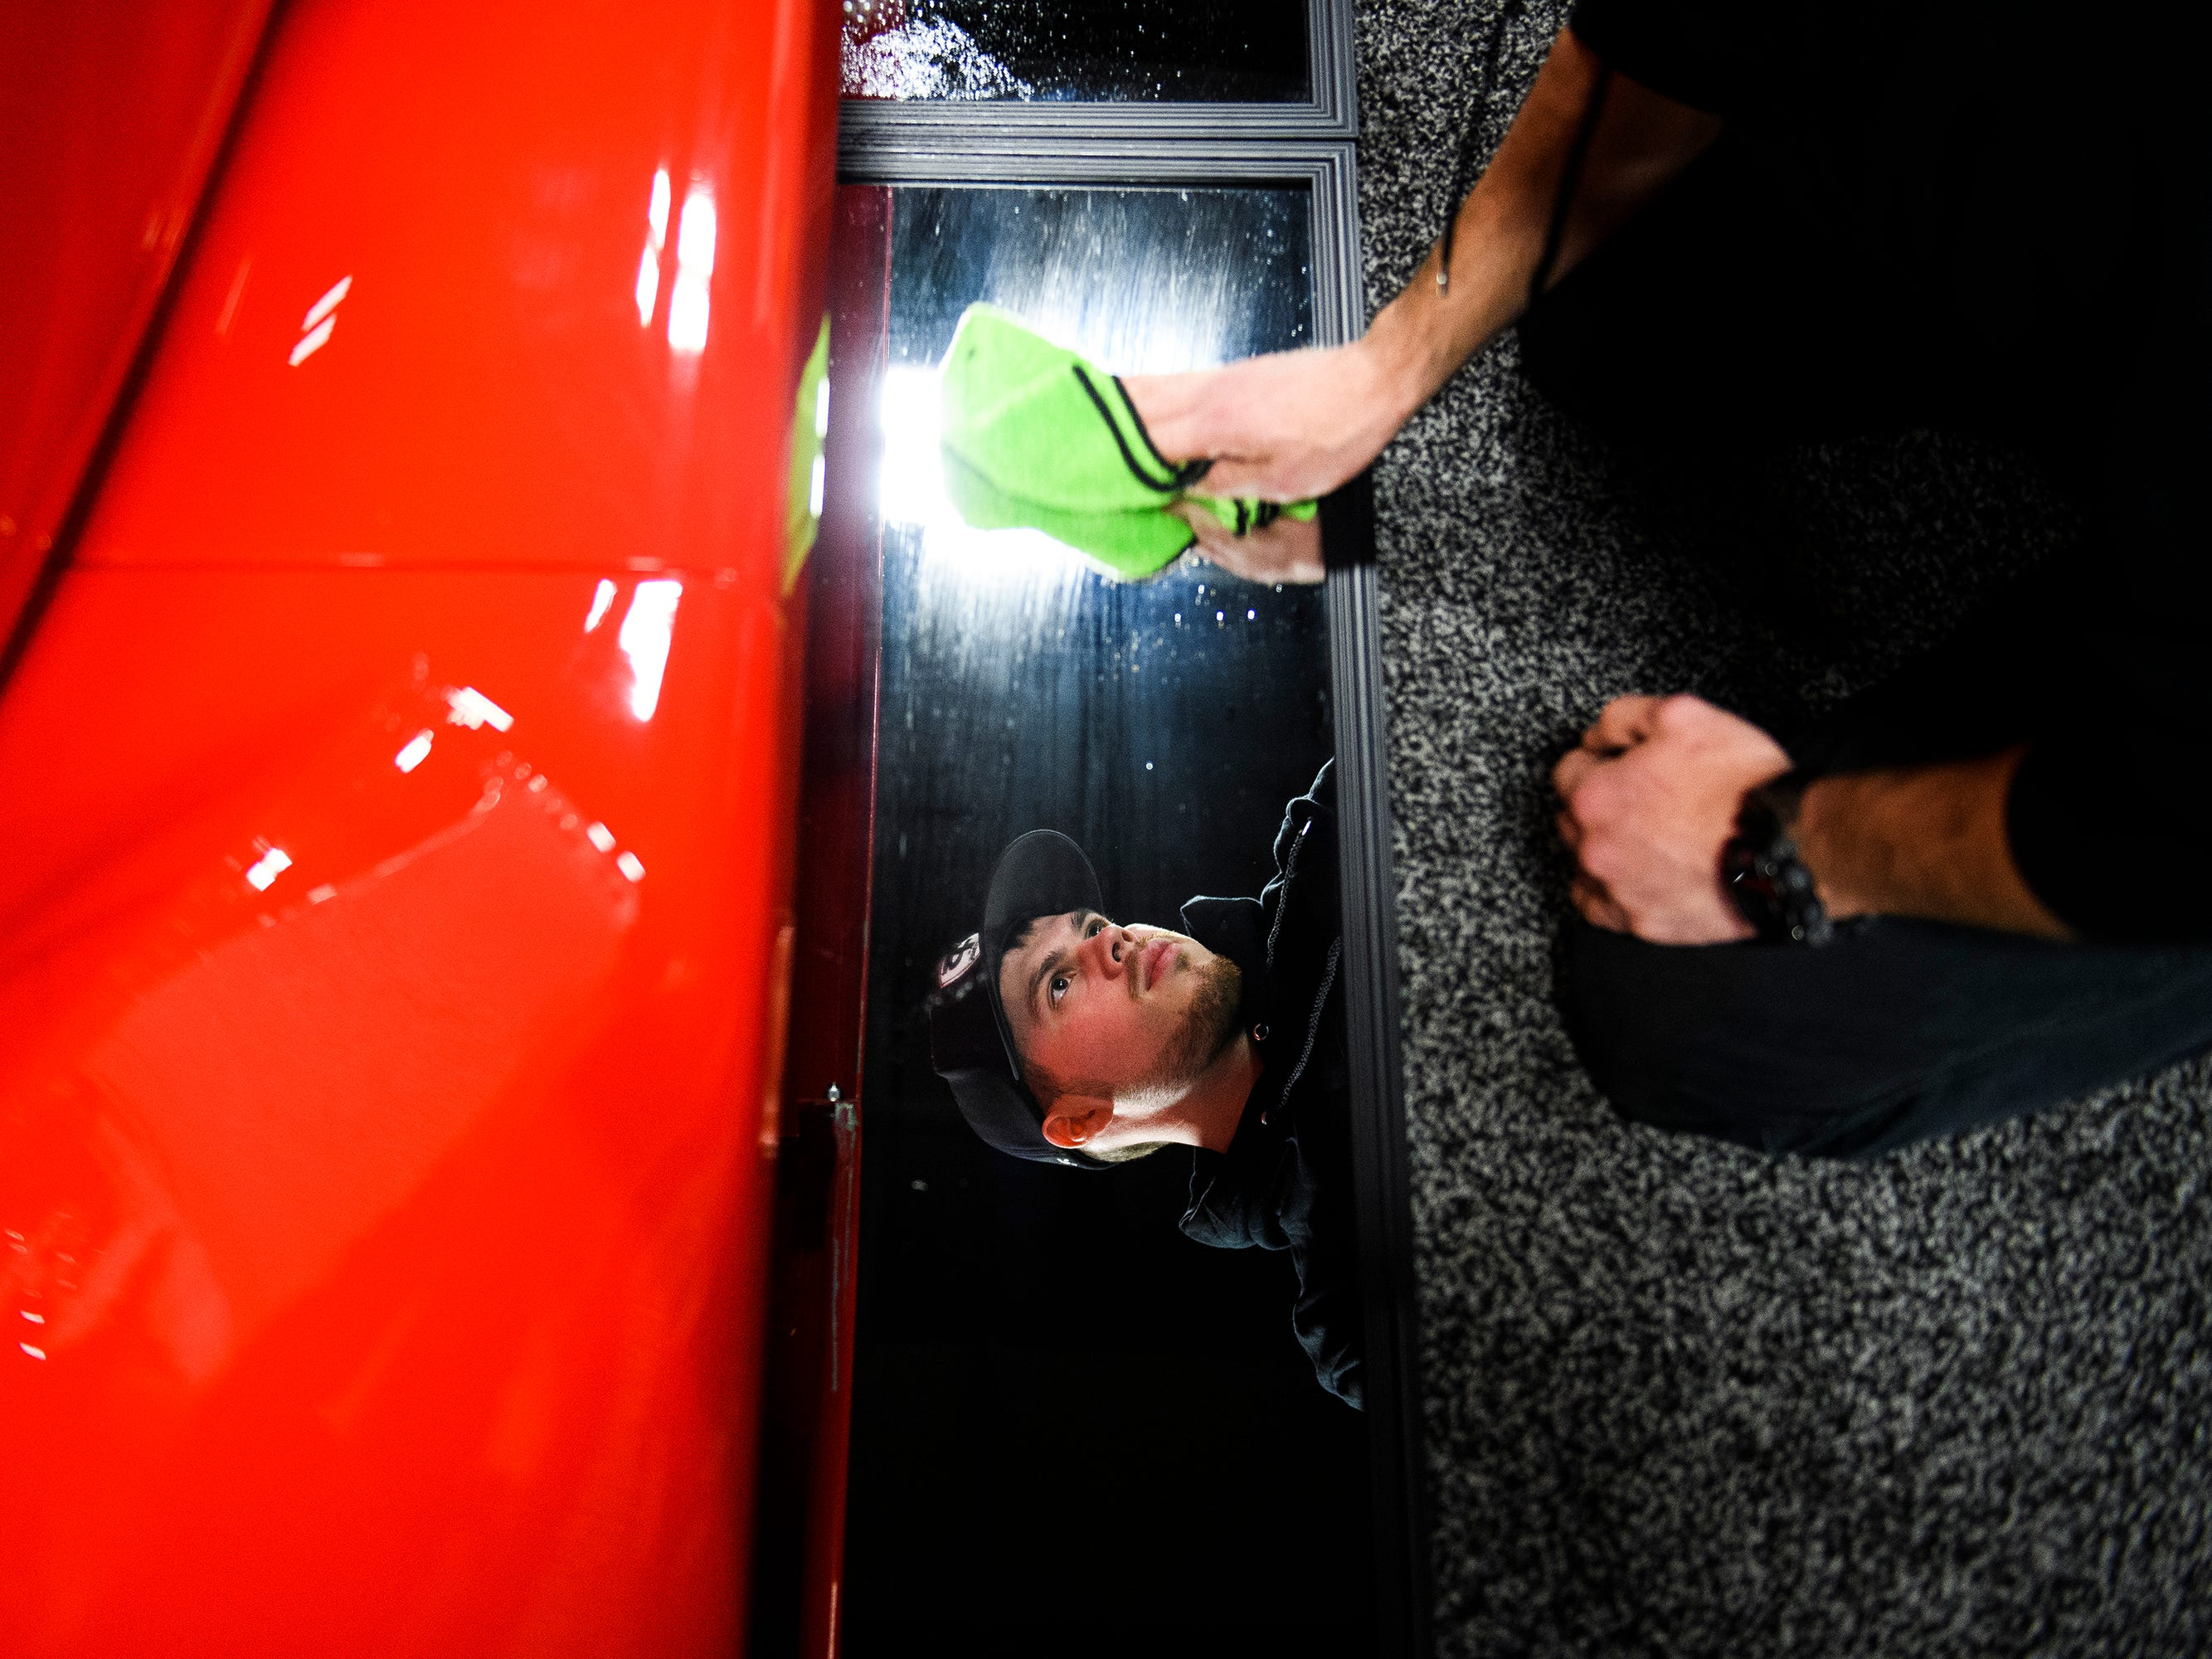 Brandon Woods cleans mirrors reflecting parts underneath a vehicle during the South Carolina International Auto Show Friday, Jan. 11, 2019 at the Greenville Convention Center.